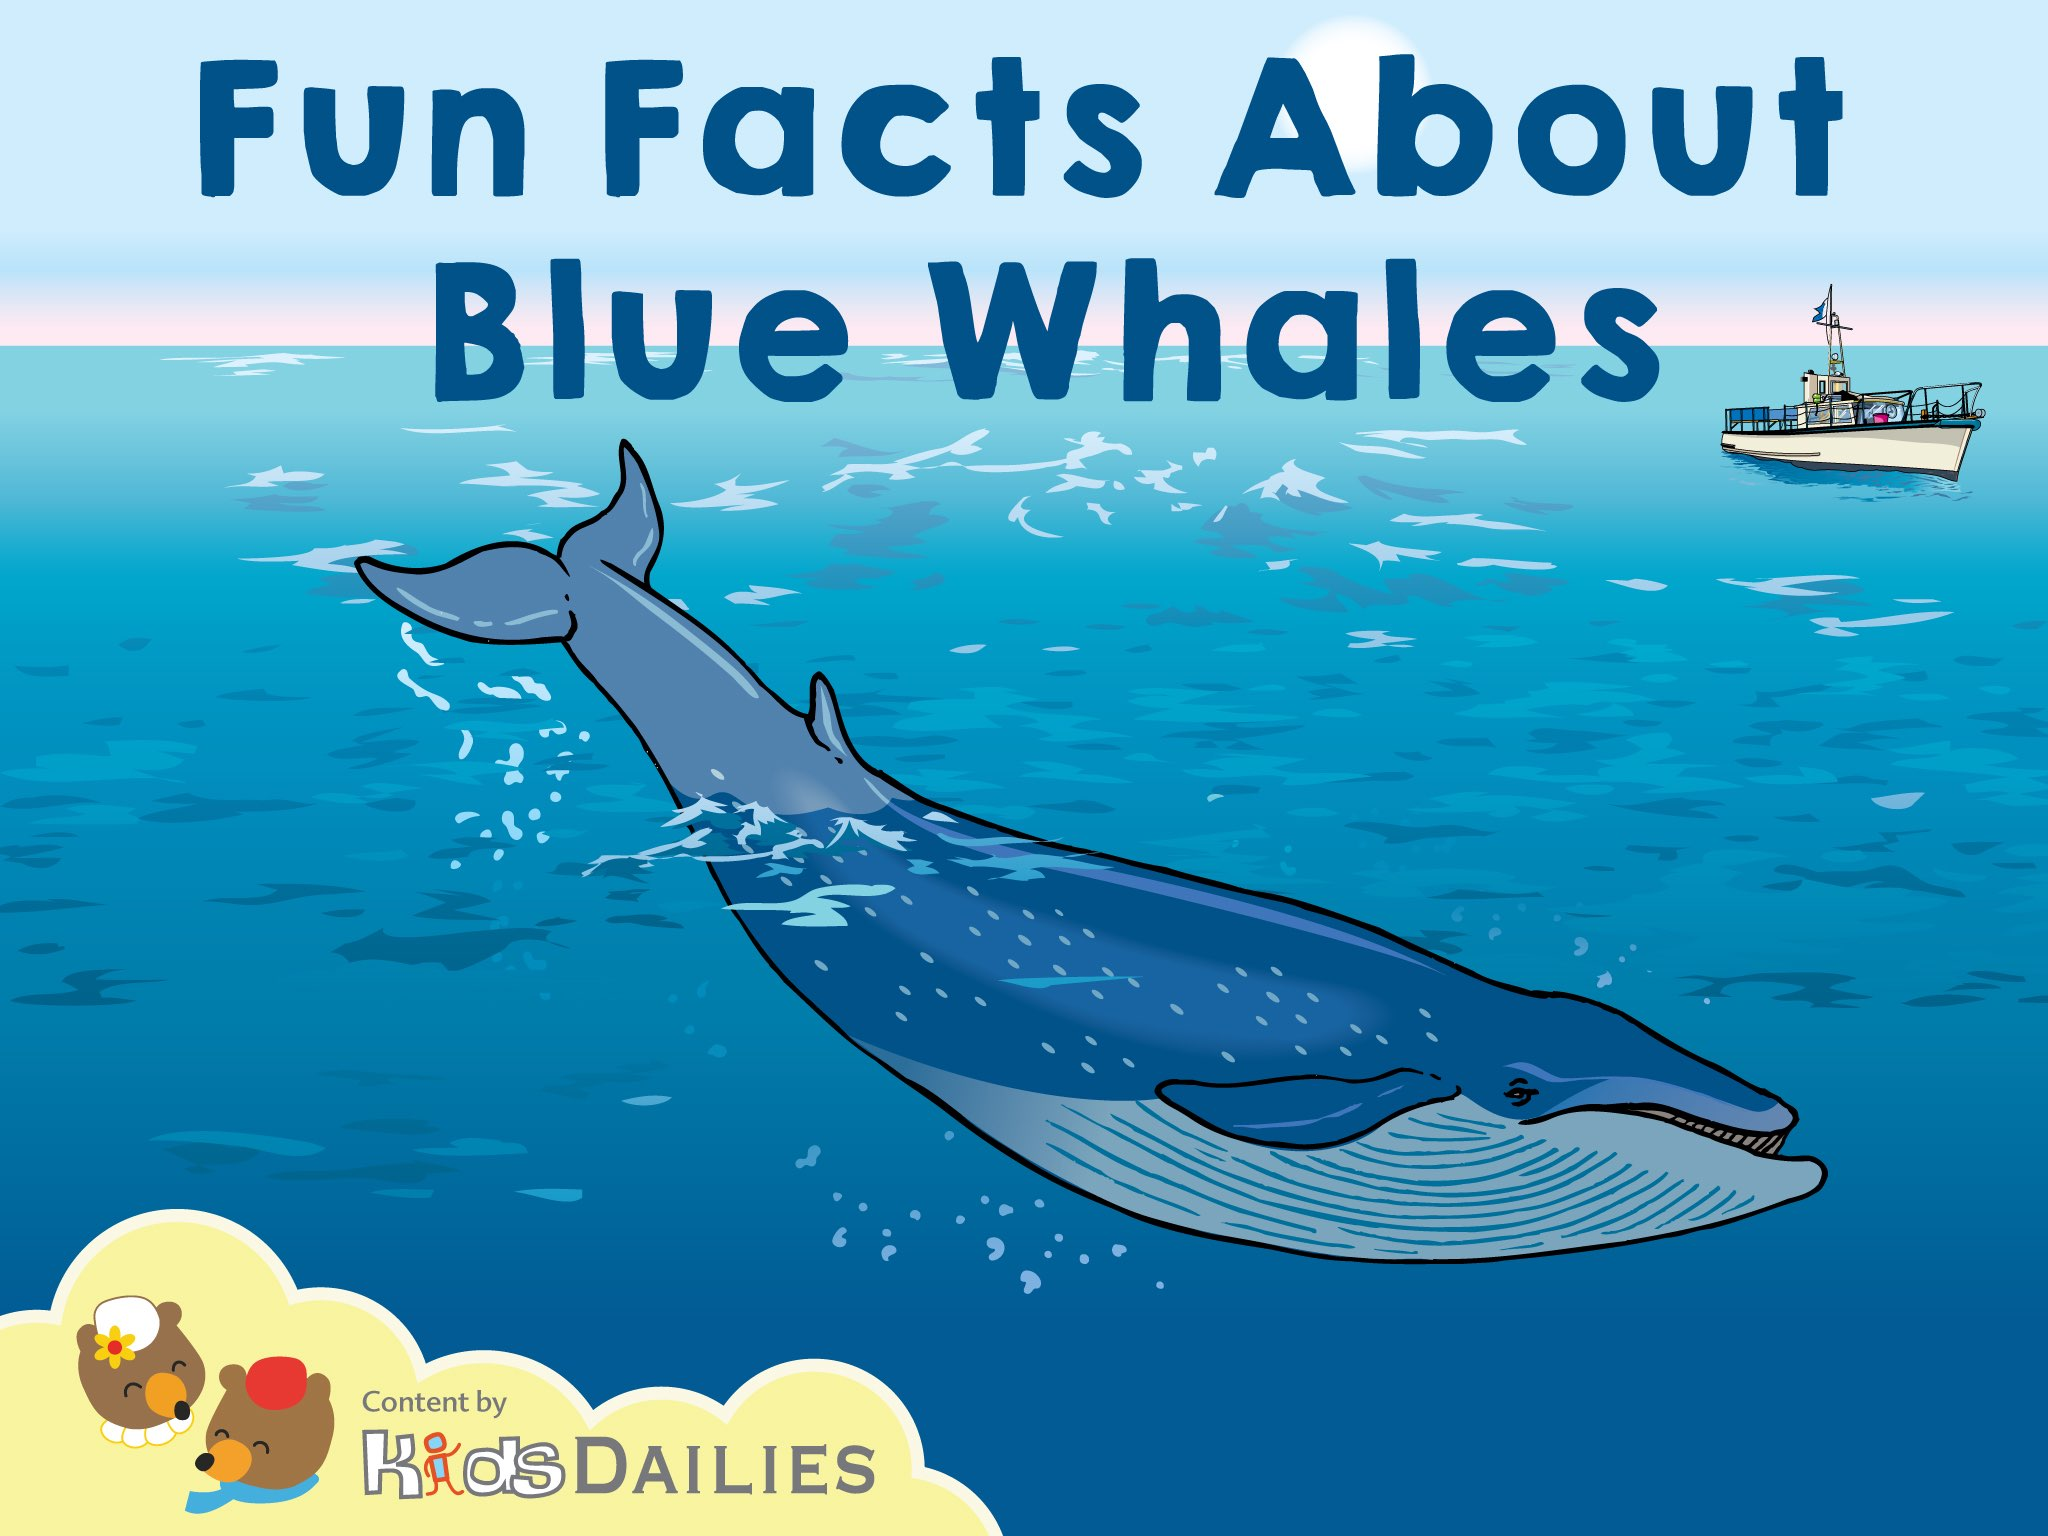 Fun Facts About Blue Whales by Kids Dailies - Educational